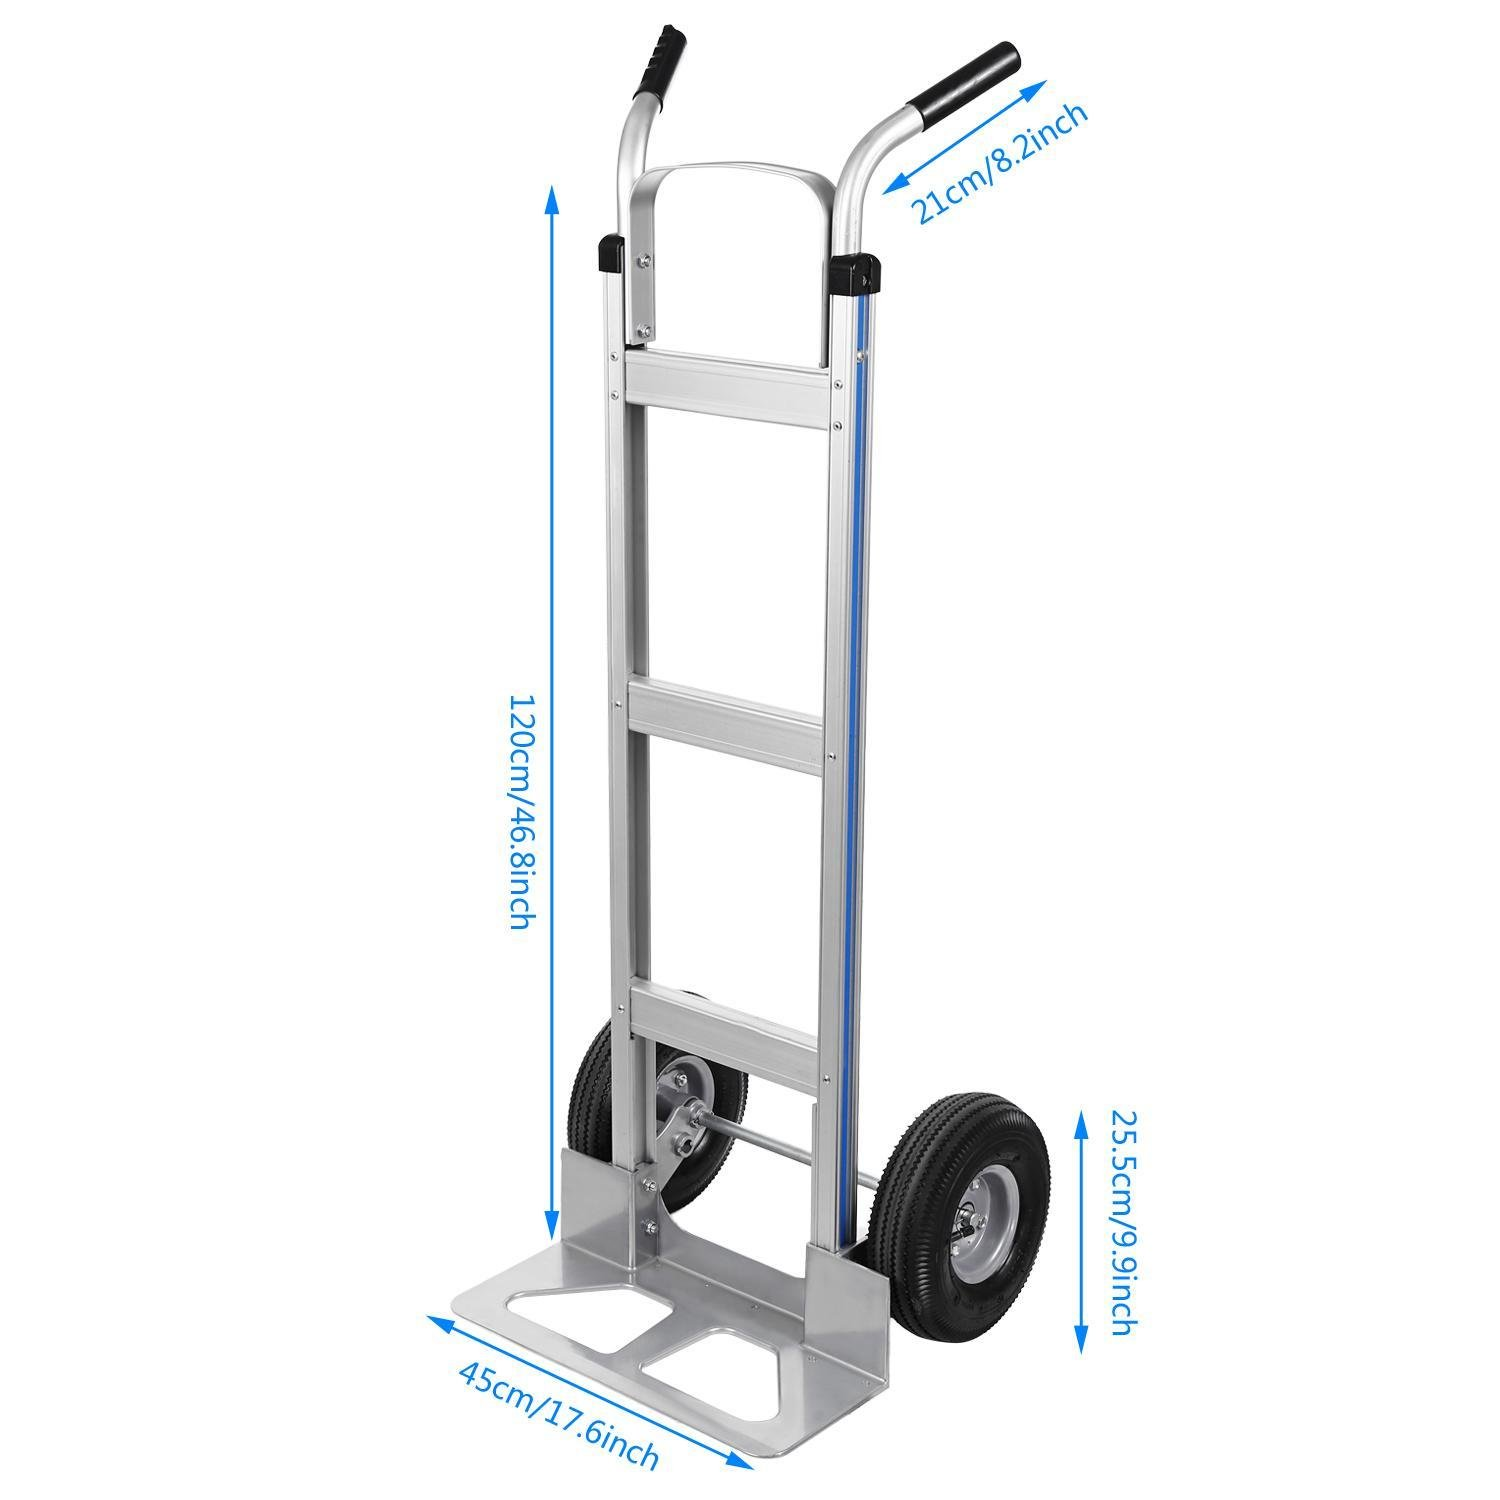 Ferty Aluminum Hand Trucks 500LBS With 2 Pneumatic Tires Dolly, Double Pistol Grip Handle Heavy Duty Trolley/Cart With 2 Wrench by Ferty (Image #5)